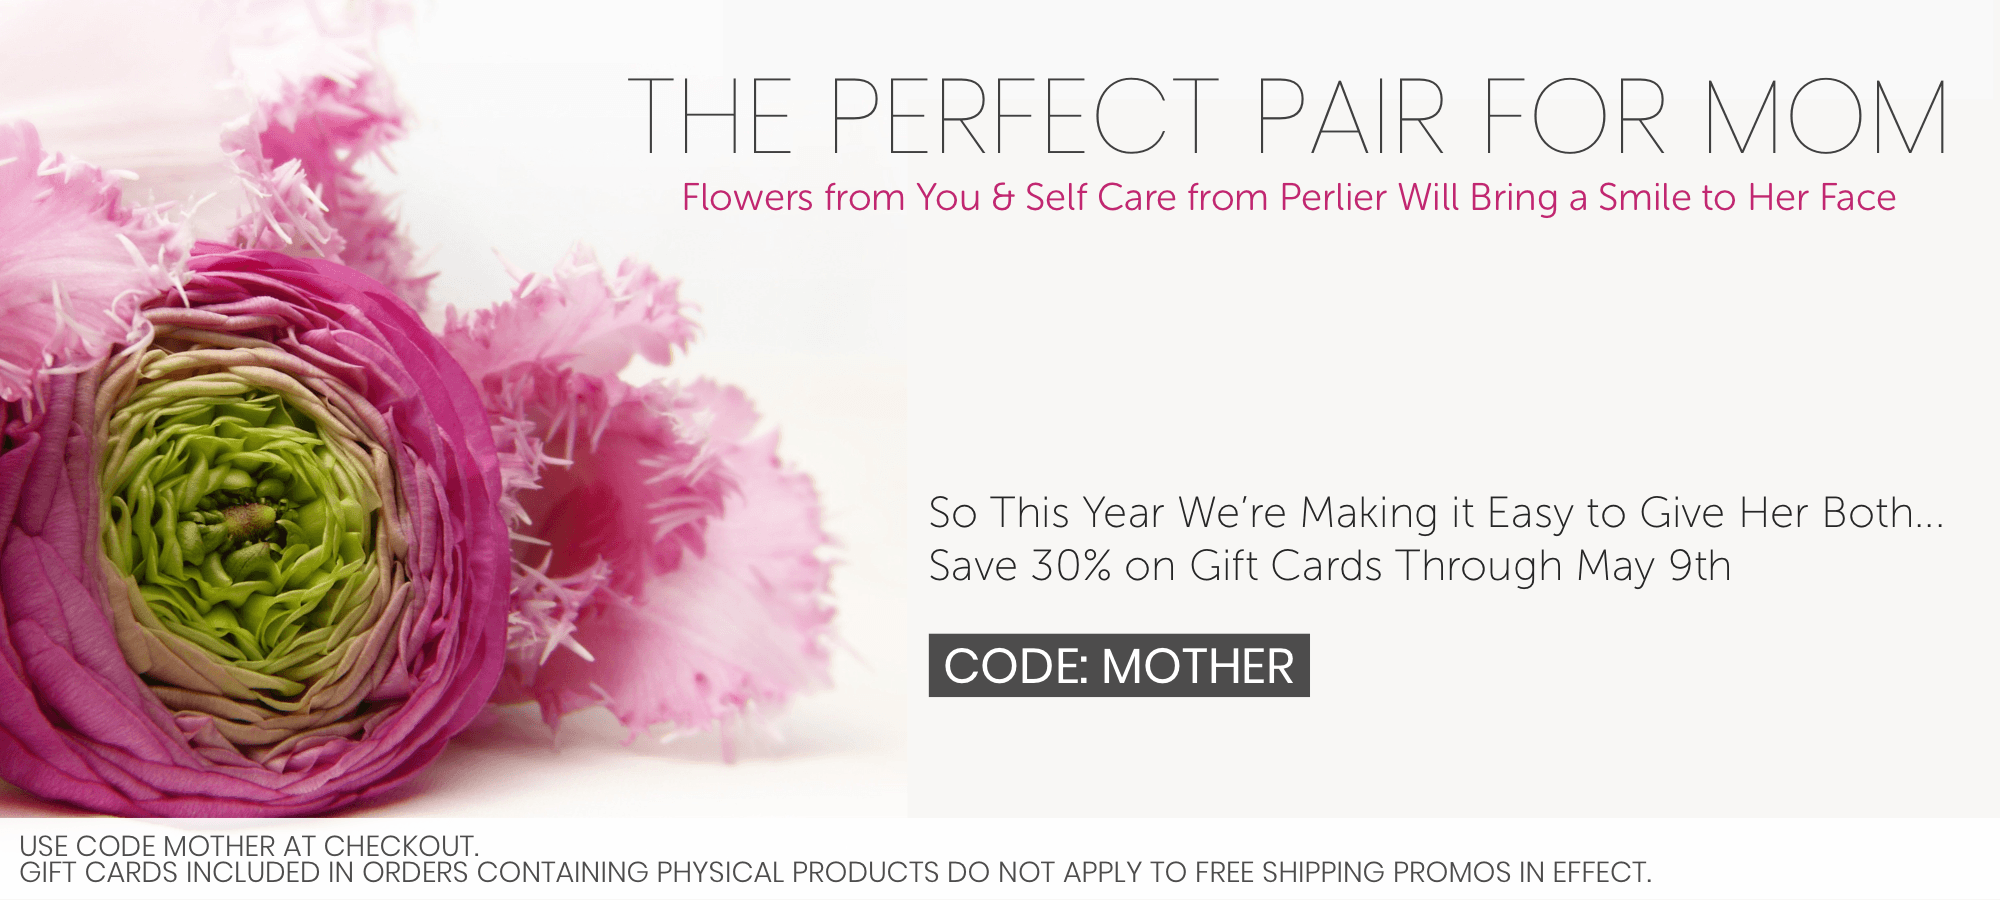 Save 30% on Perlier Gift Cards